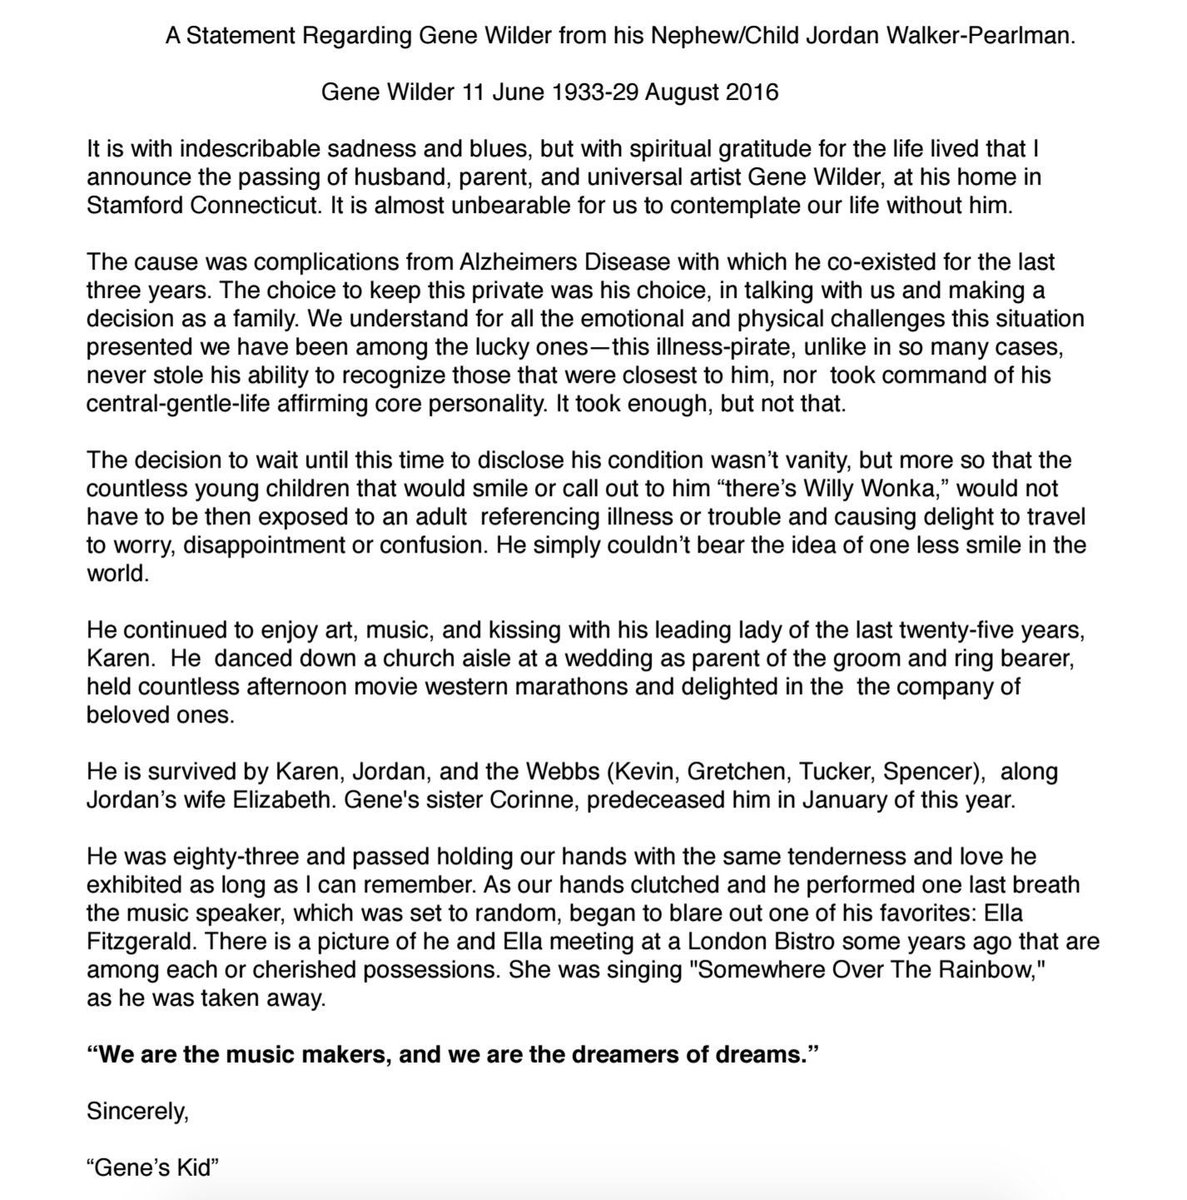 Here's statement from Gene Wilder's family on his death, why illness wasn't disclosed. https://t.co/3vFqCNB4Ic https://t.co/Ax2jWmPvQM